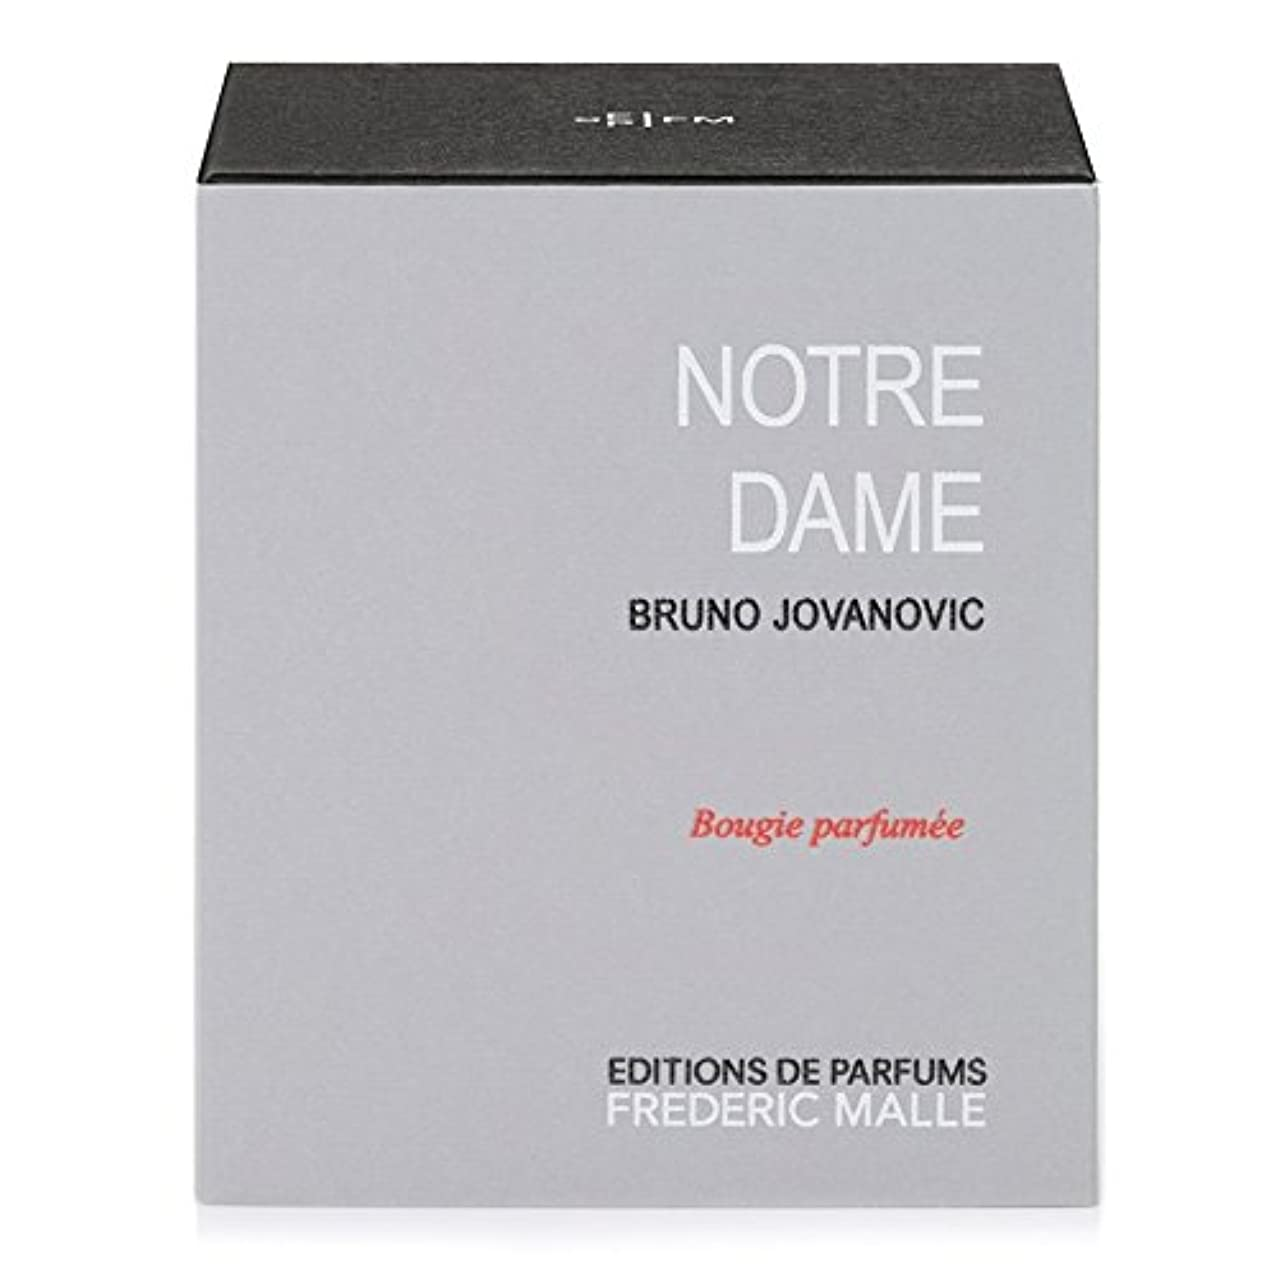 Frederic Malle Notre Dame Scented Candle 220g (Pack of 4) - フレデリック?マルノートルダム香りのキャンドル220グラム x4 [並行輸入品]